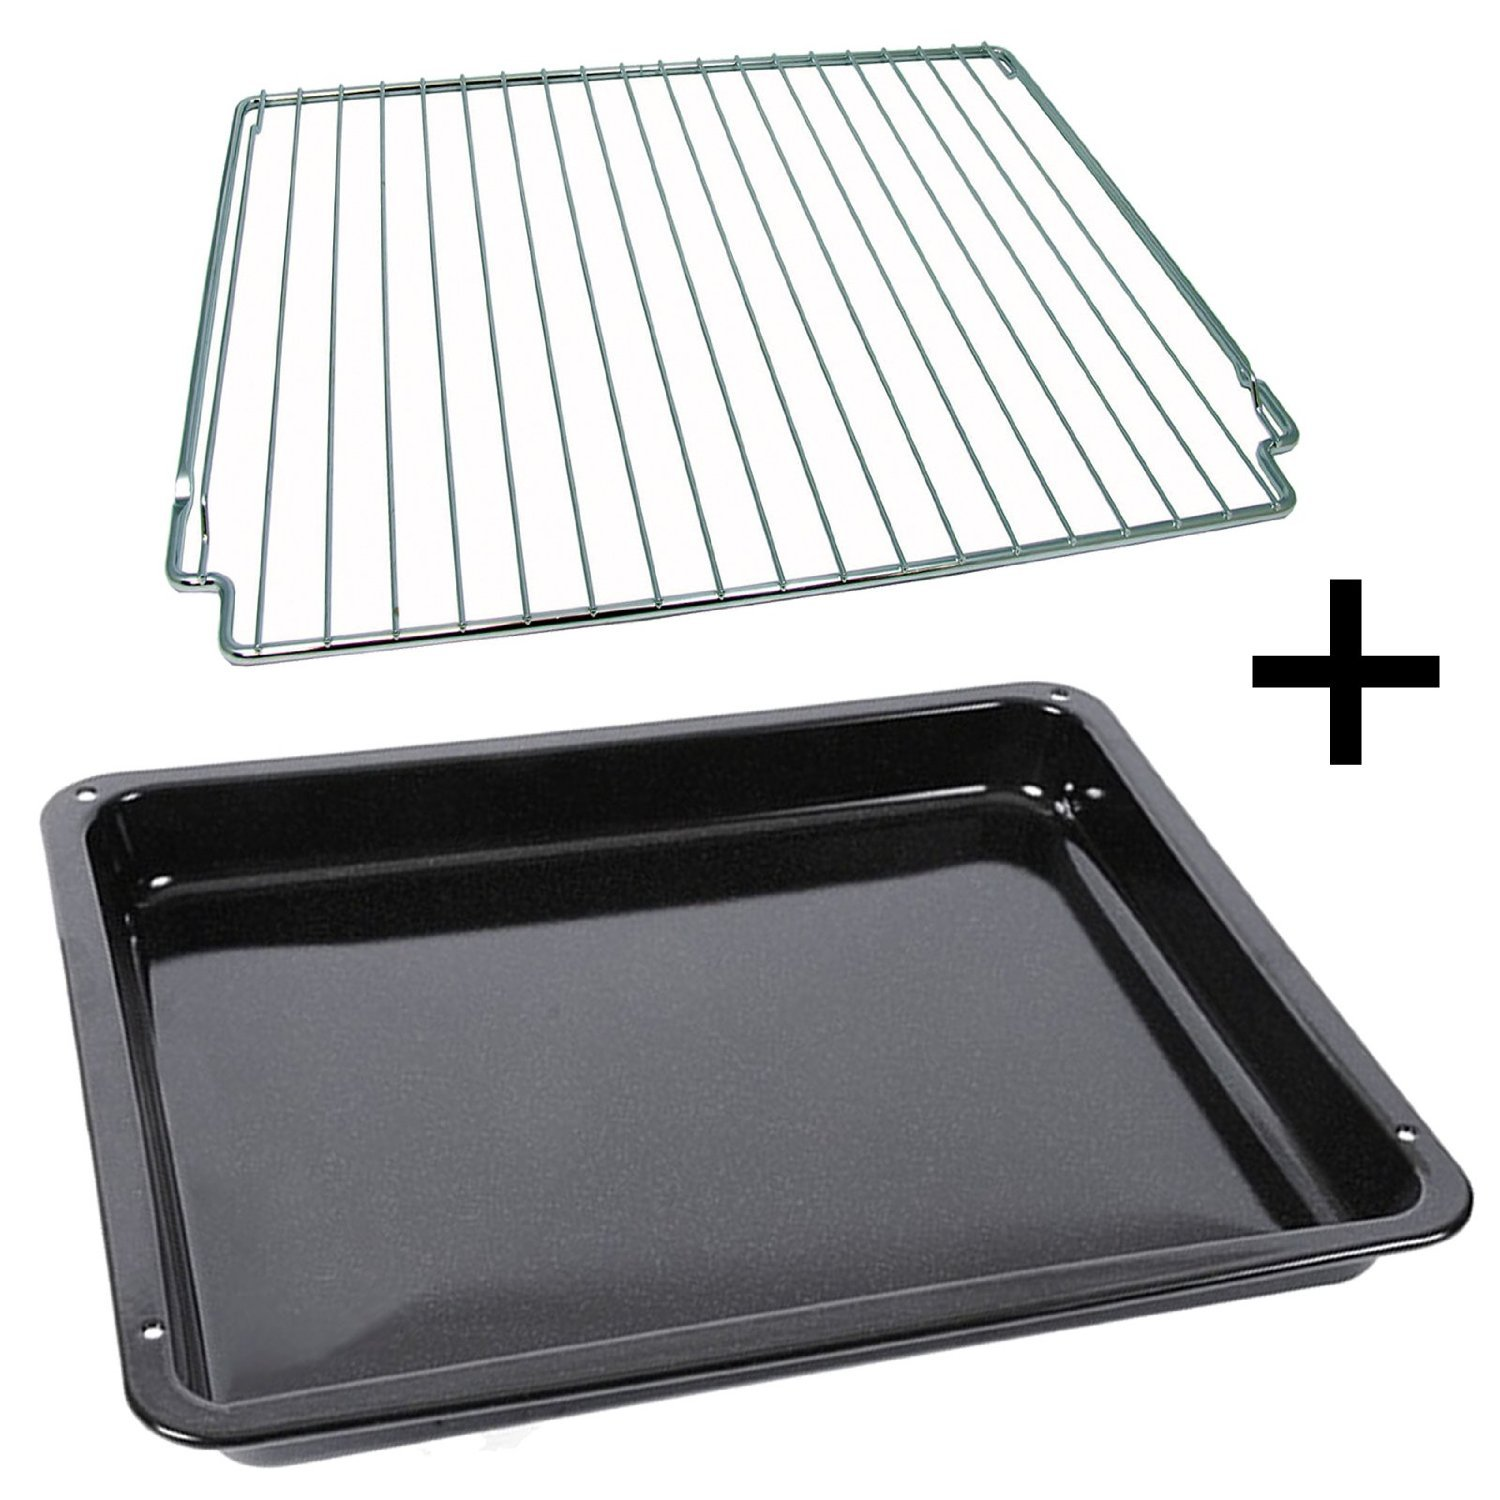 Electrolux Oven Cooker Enamel Drip Tray Pan + Grid Rack Stand (Genuine Part)